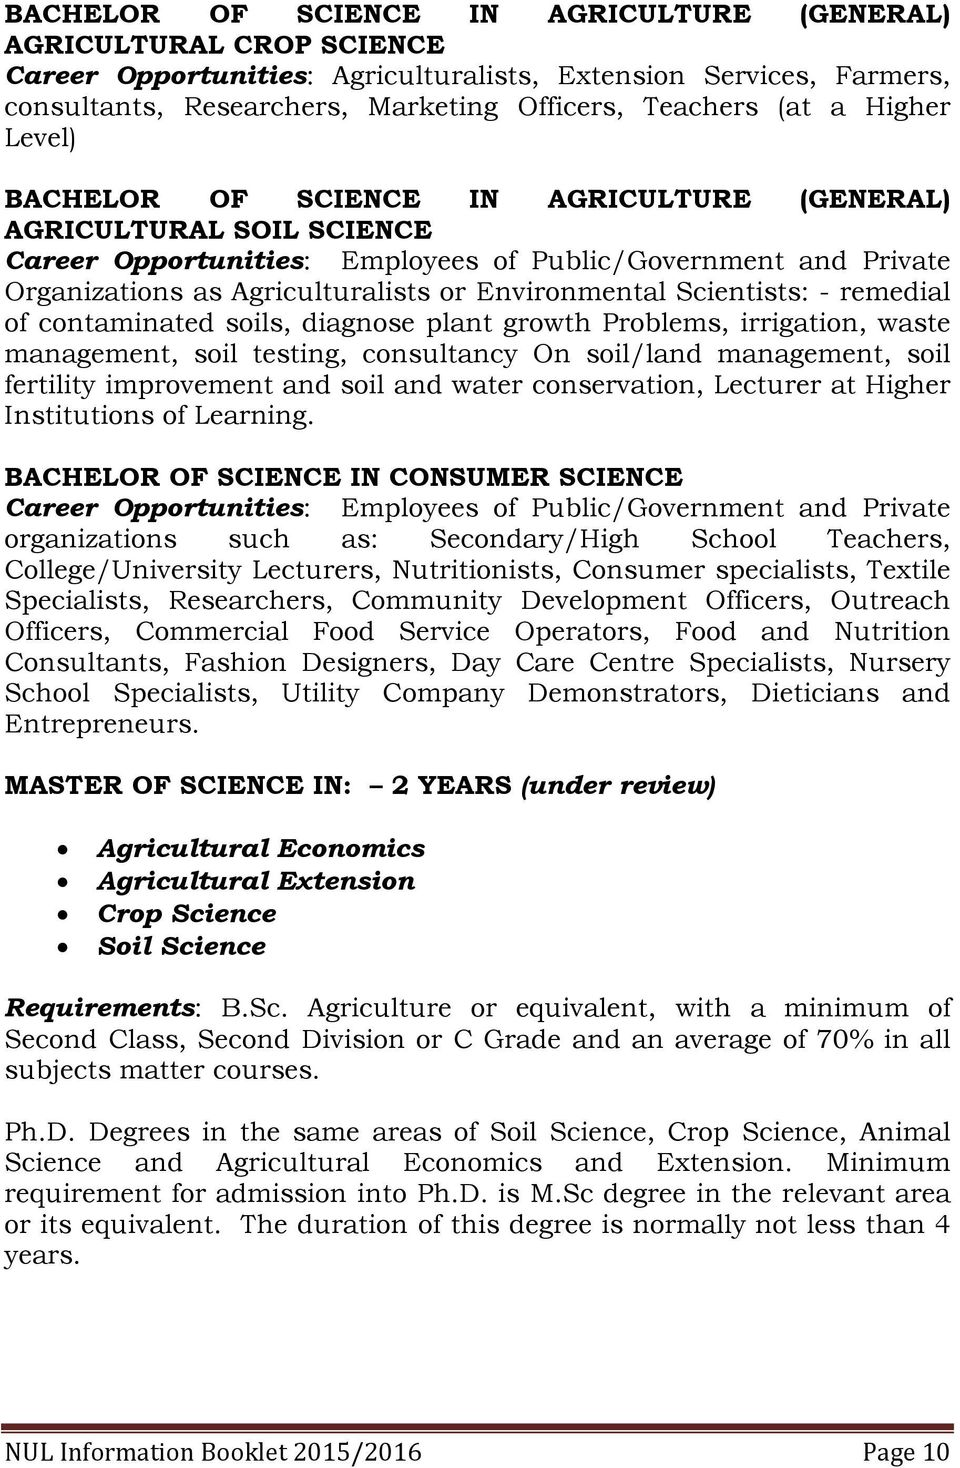 Environmental Scientists: - remedial of contaminated soils, diagnose plant growth Problems, irrigation, waste management, soil testing, consultancy On soil/land management, soil fertility improvement